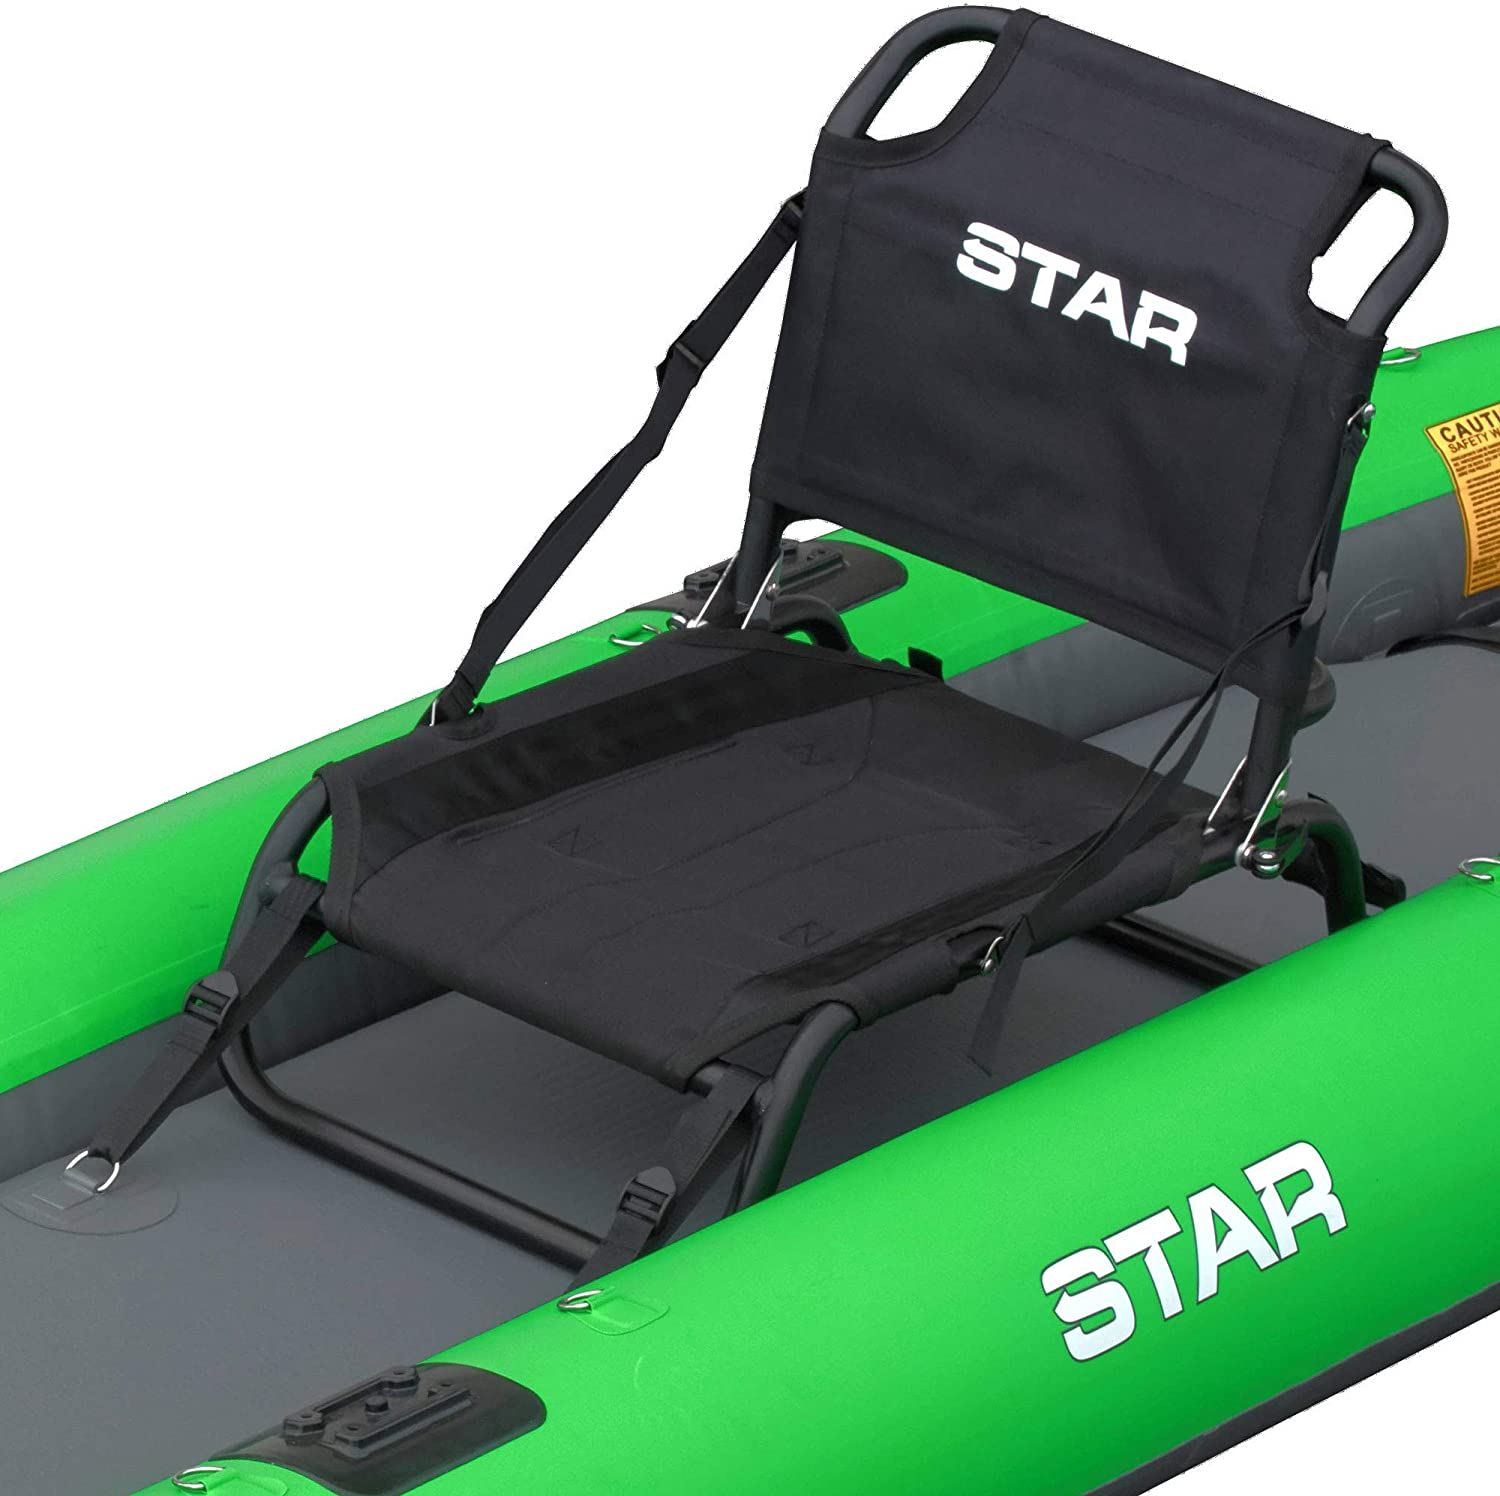 Amazon.com: NRS Star - Asiento de pesca para Kayak hinchable ...